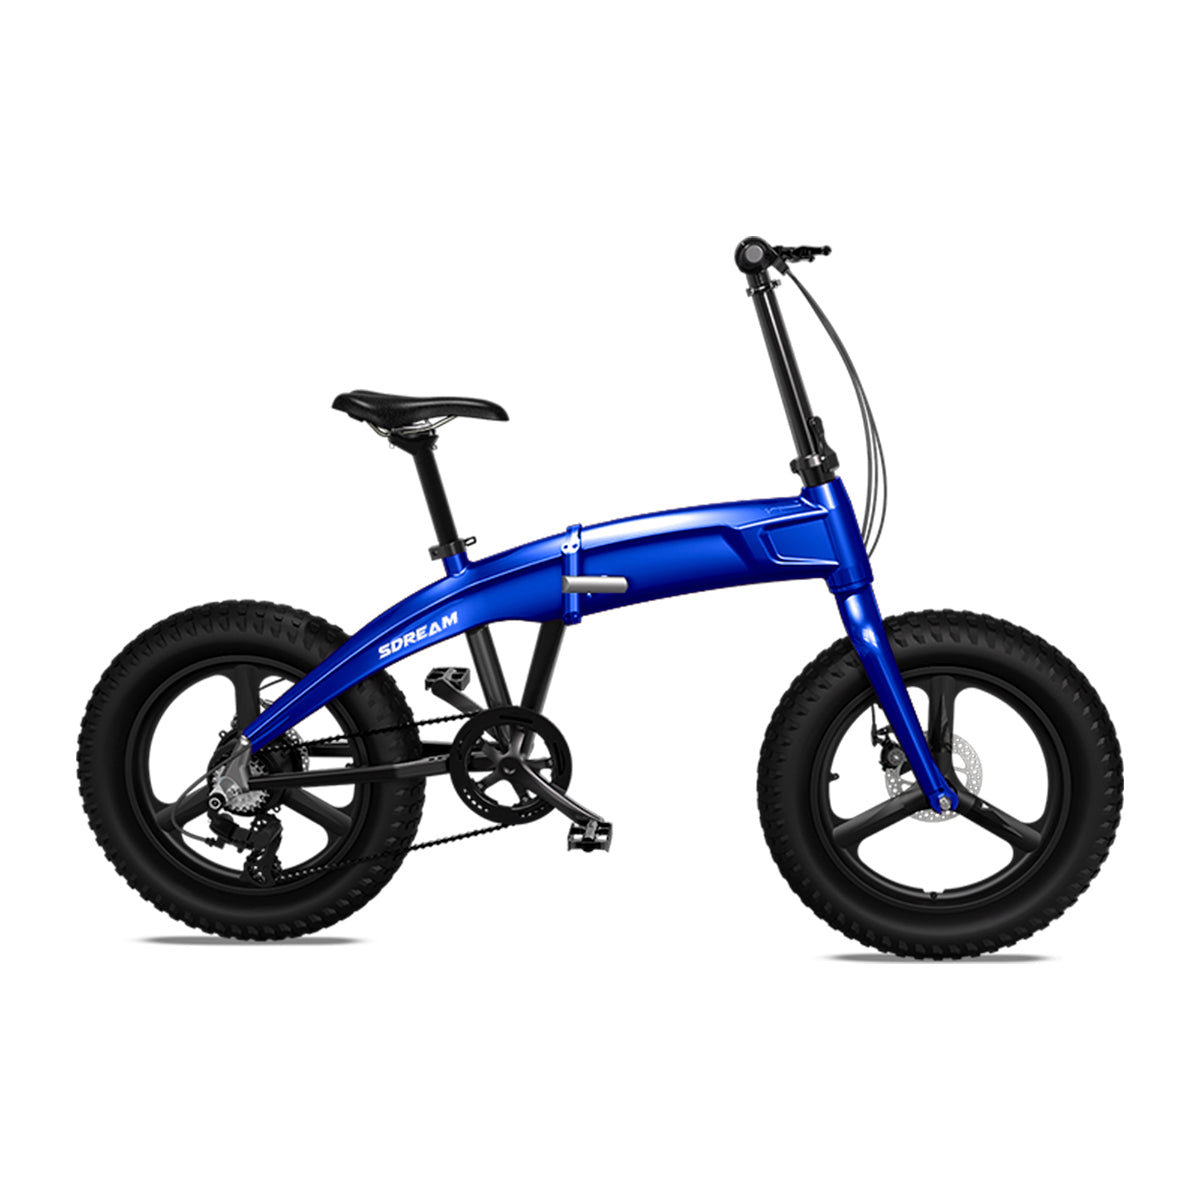 "X500 - Fat Tire Foldable Aluminum 20"" Electric Bike in 2 Colors"